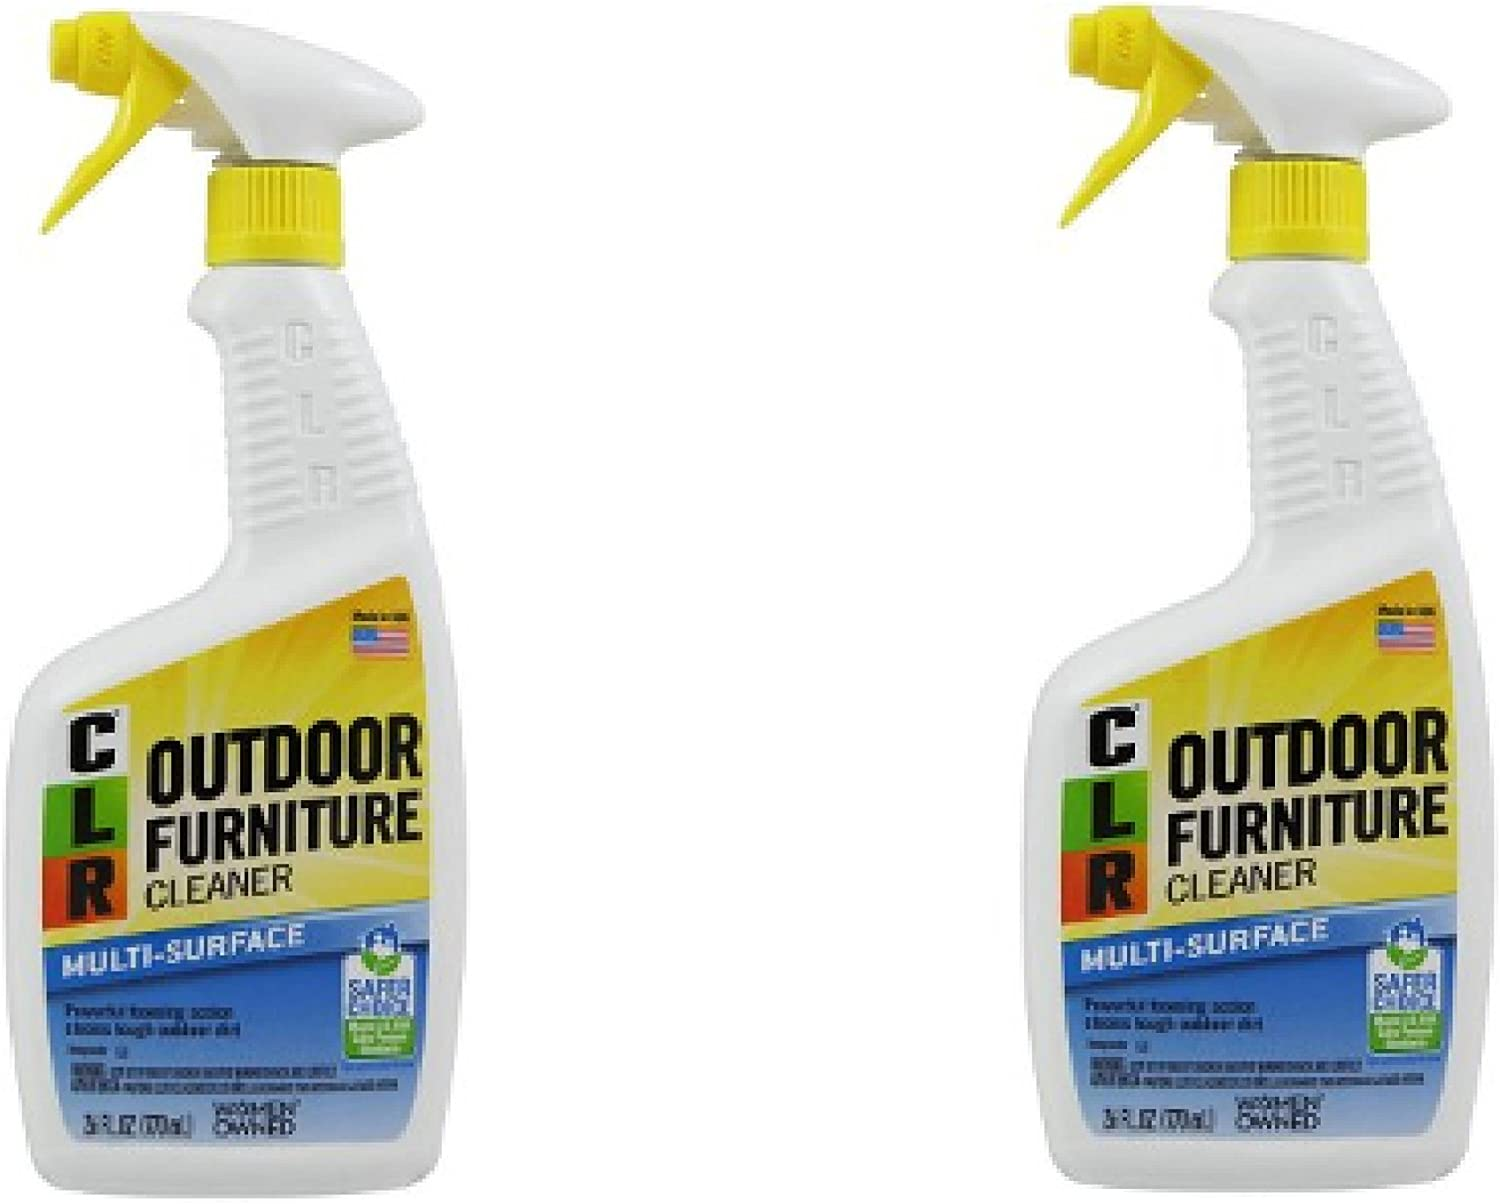 Outdoor Furniture Cleaner, Protect Outdoor Furniture Investments From  Fading And Discoloration 10 Pack of 106 fl oz